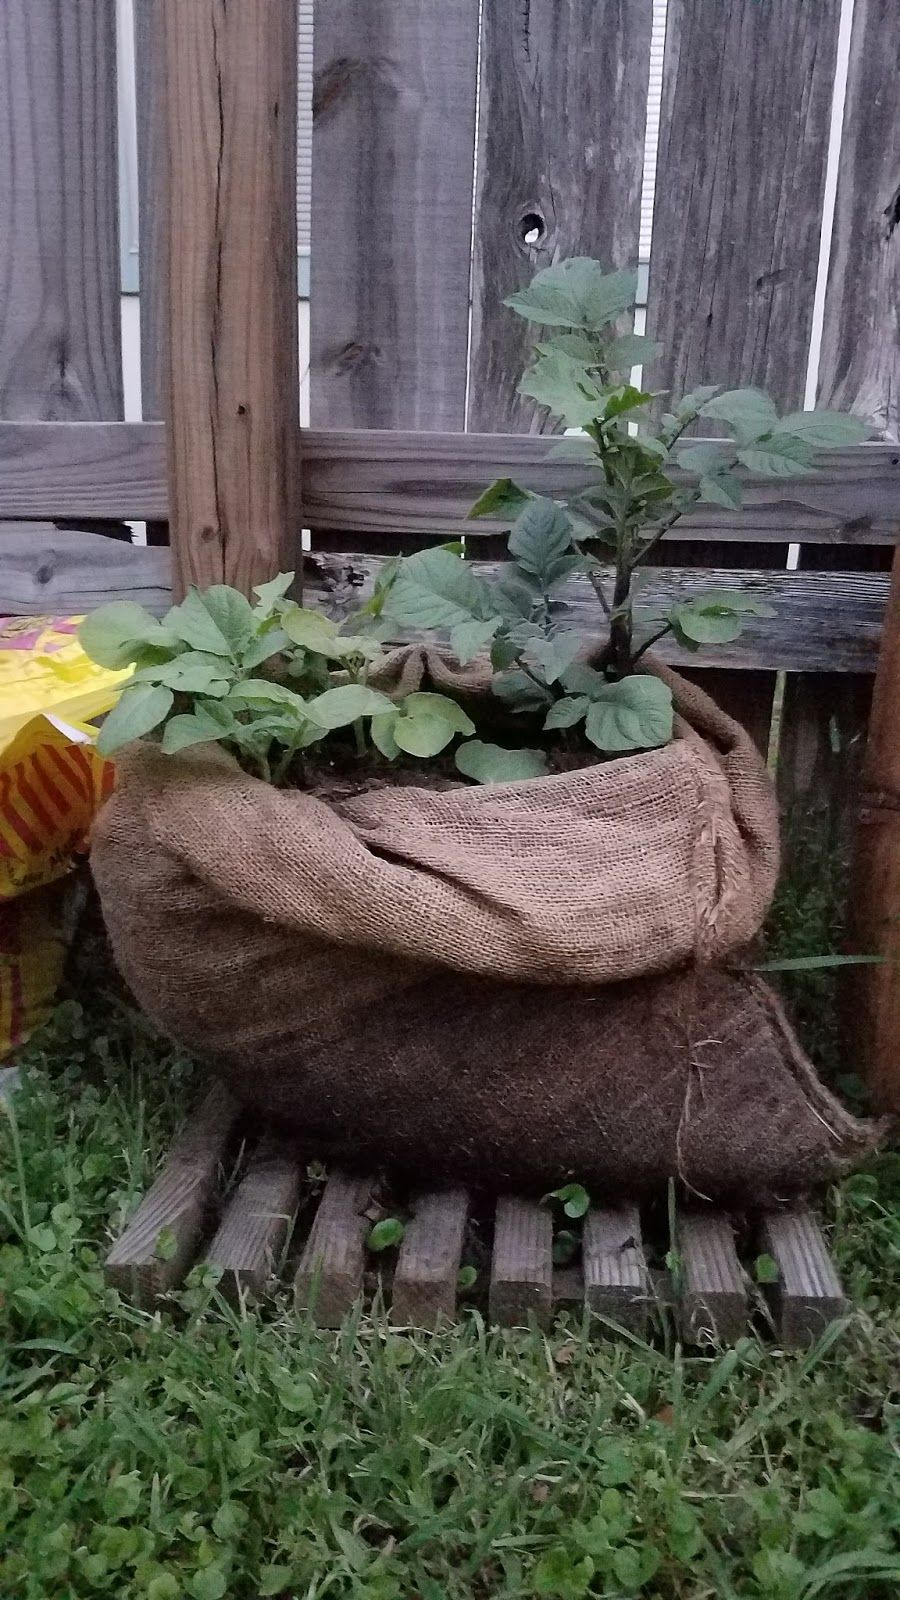 Growing Potatoes in a Potato sack or Burlap bag is easy